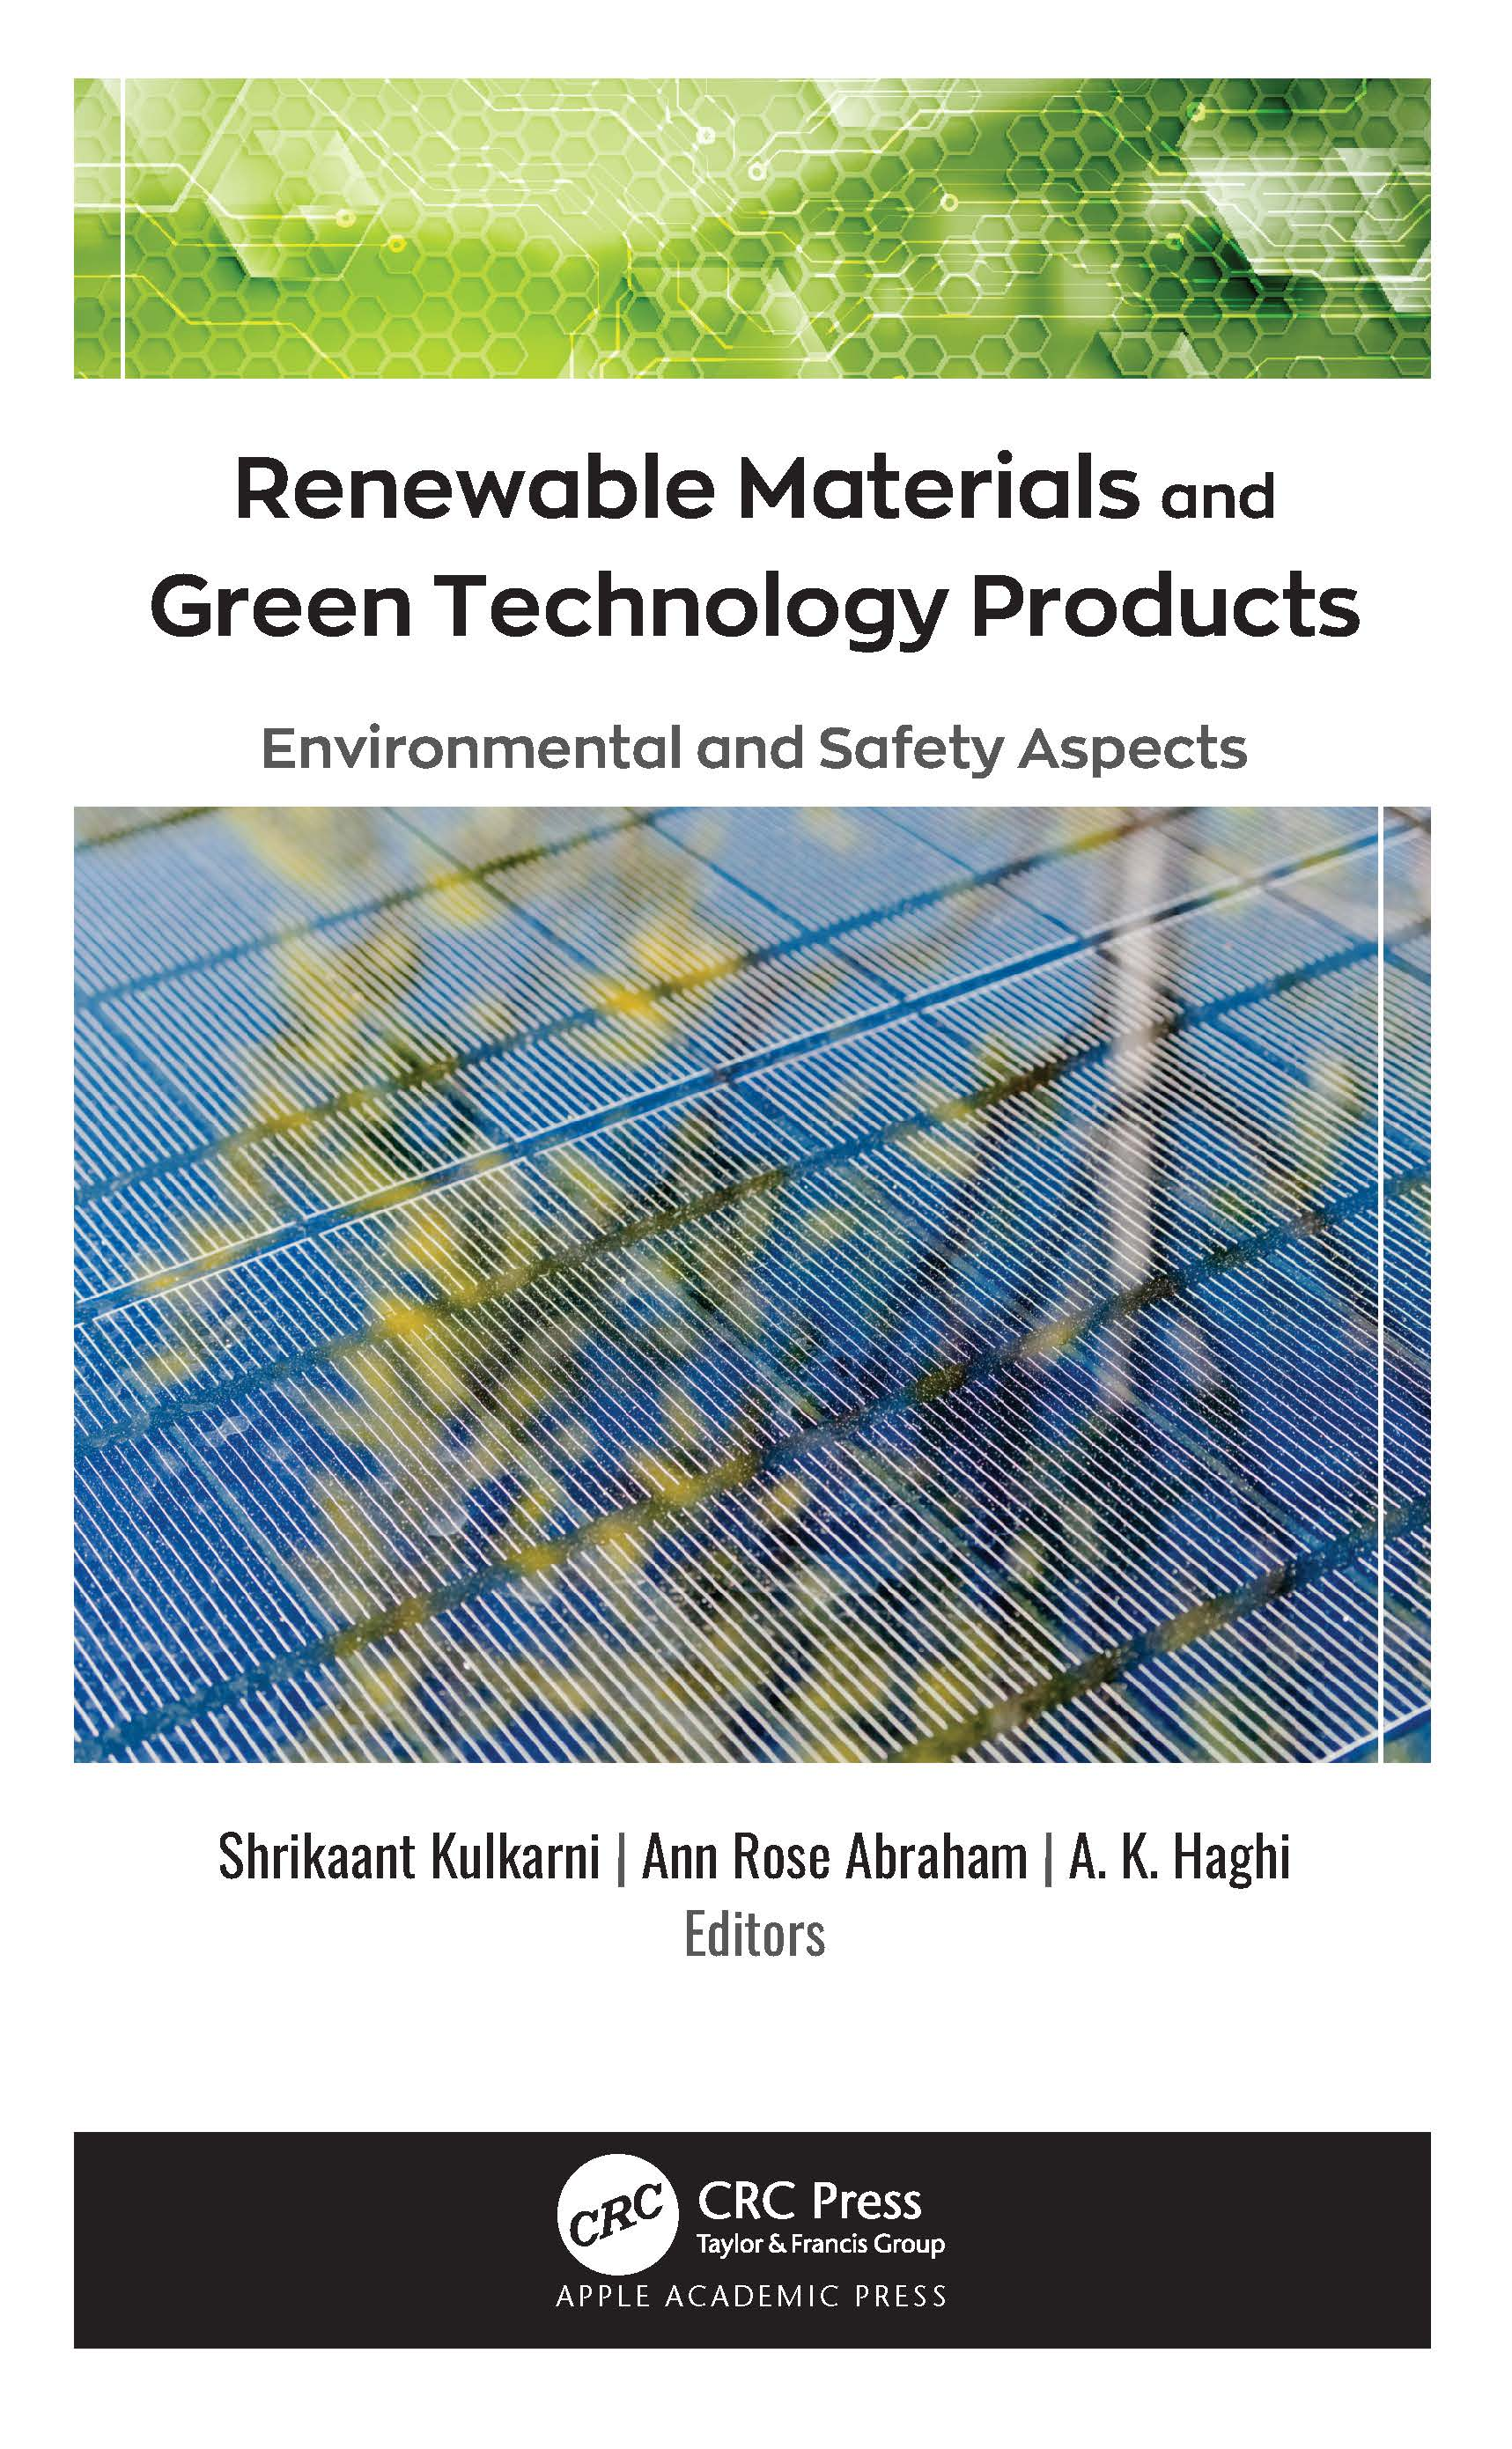 Global Abatement of Air Pollution  Through Green Technology Routes